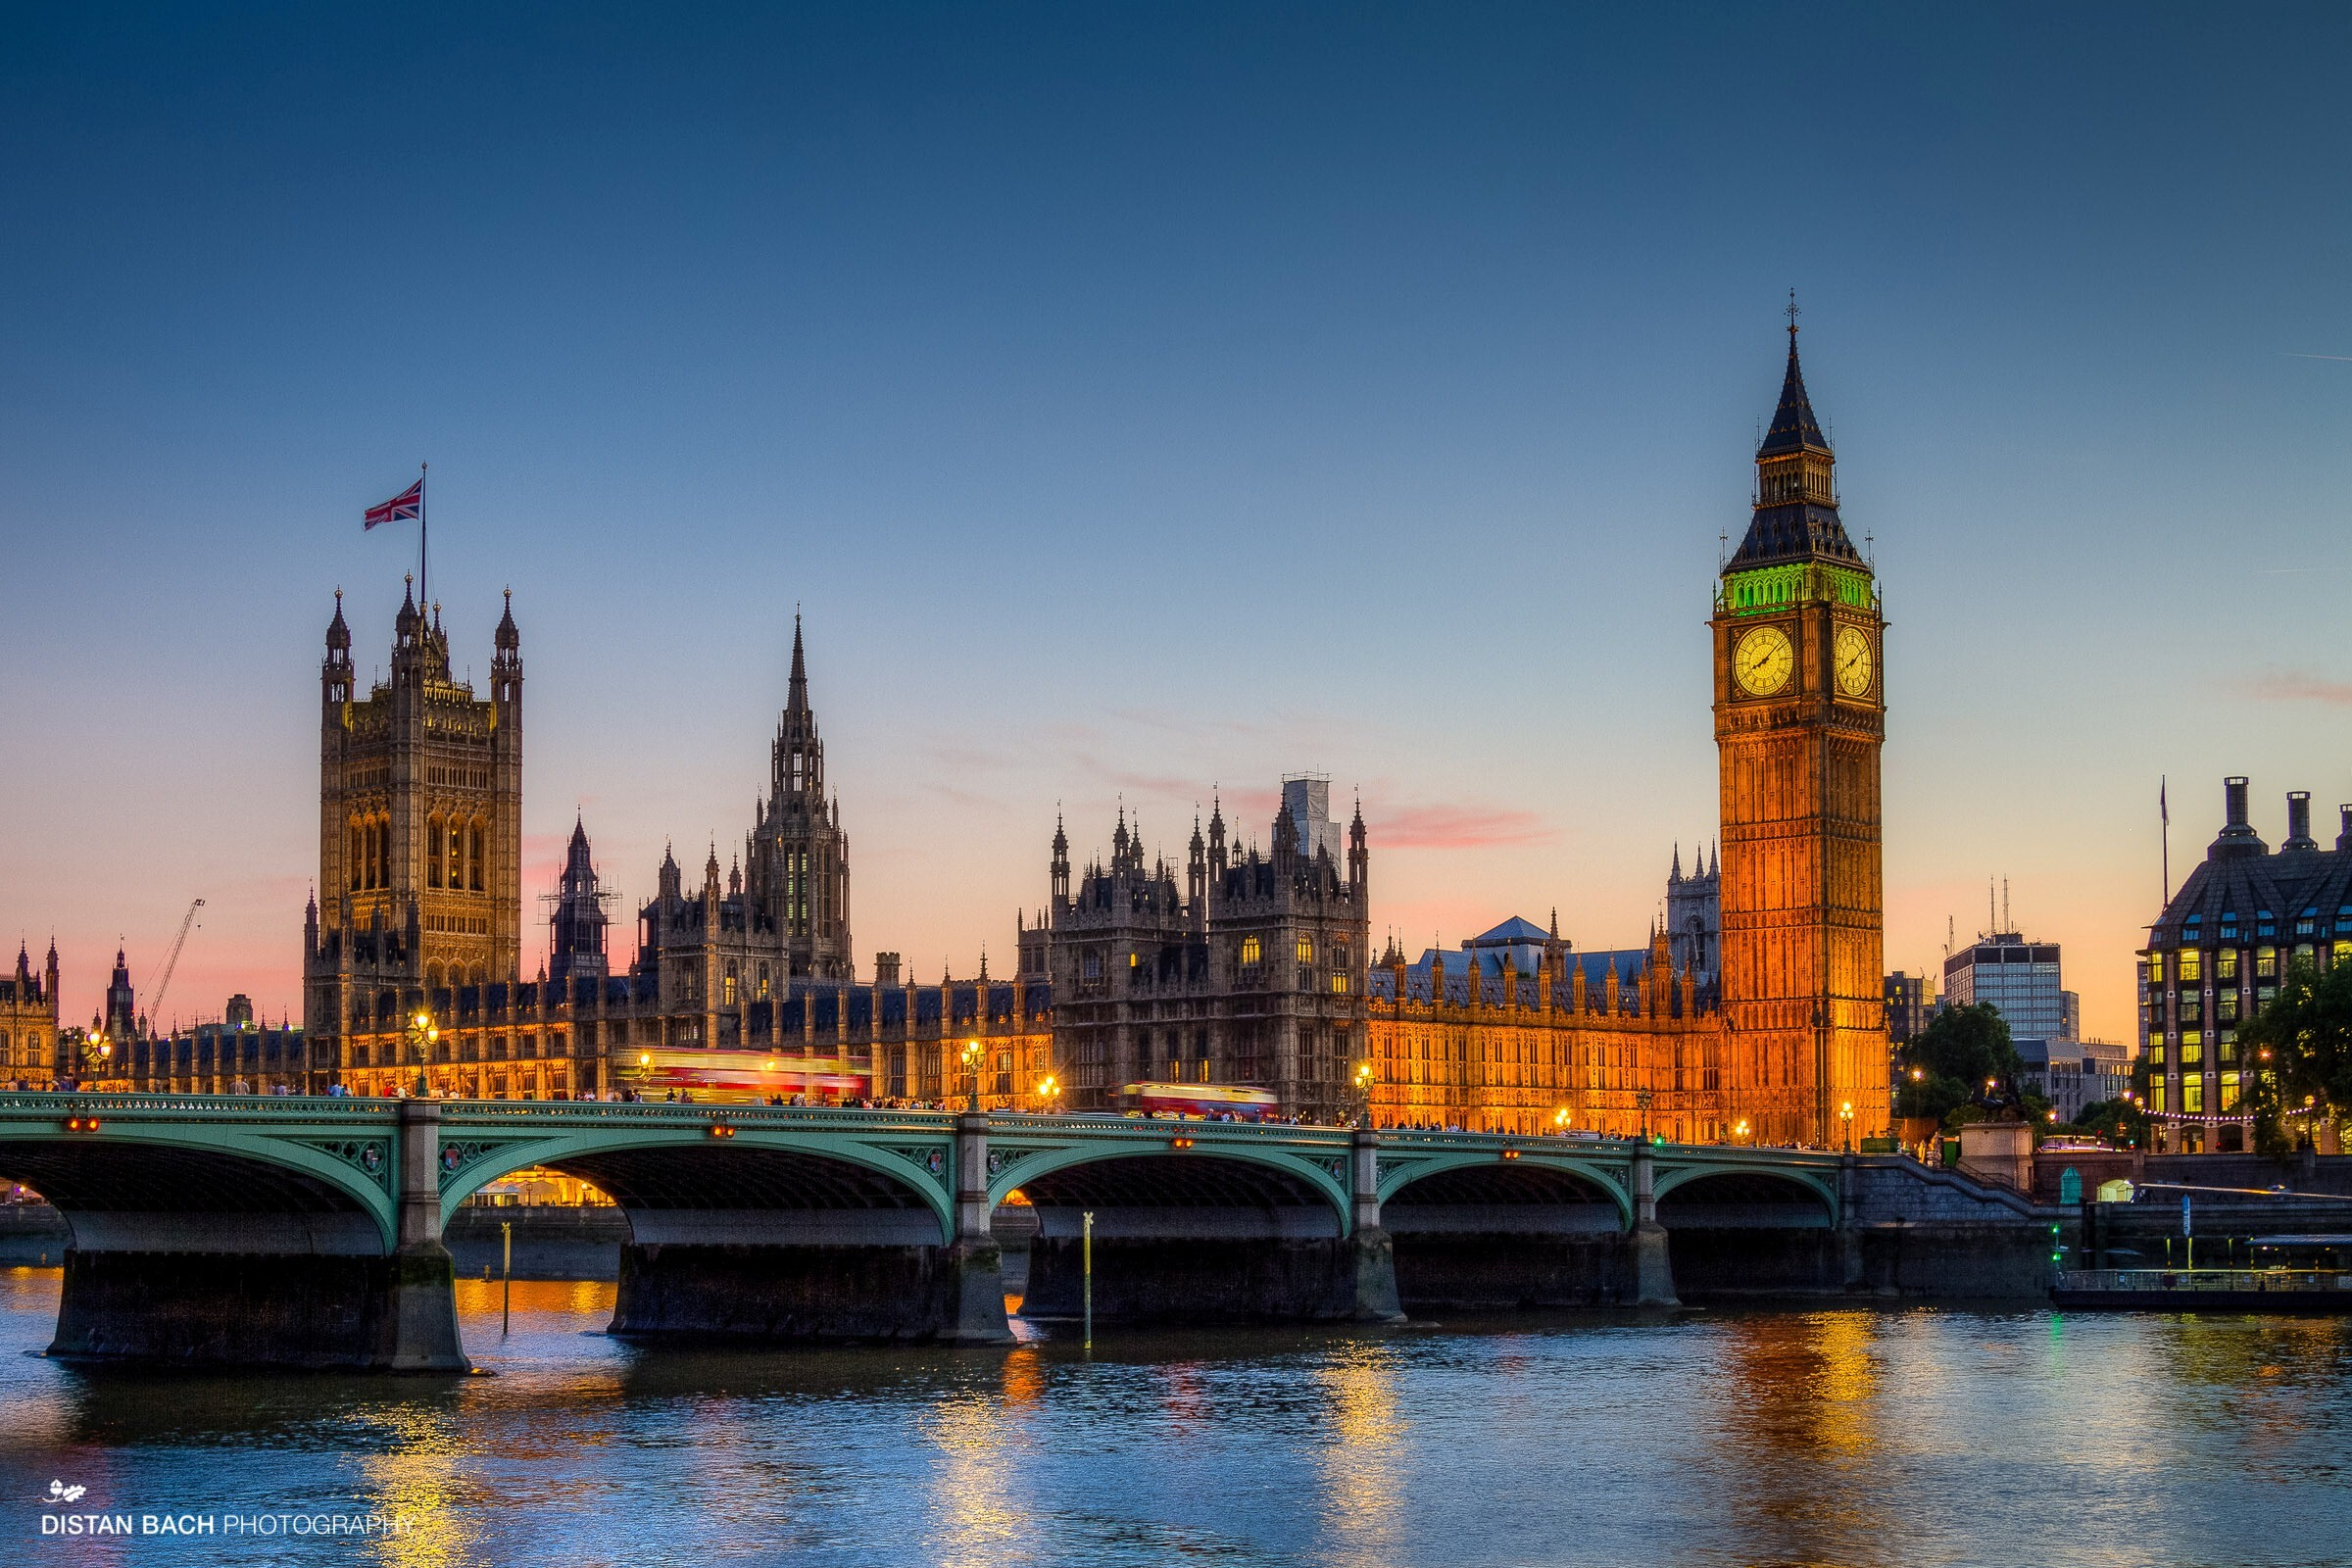 Hd wallpaper london - Countries And City Wallpapers